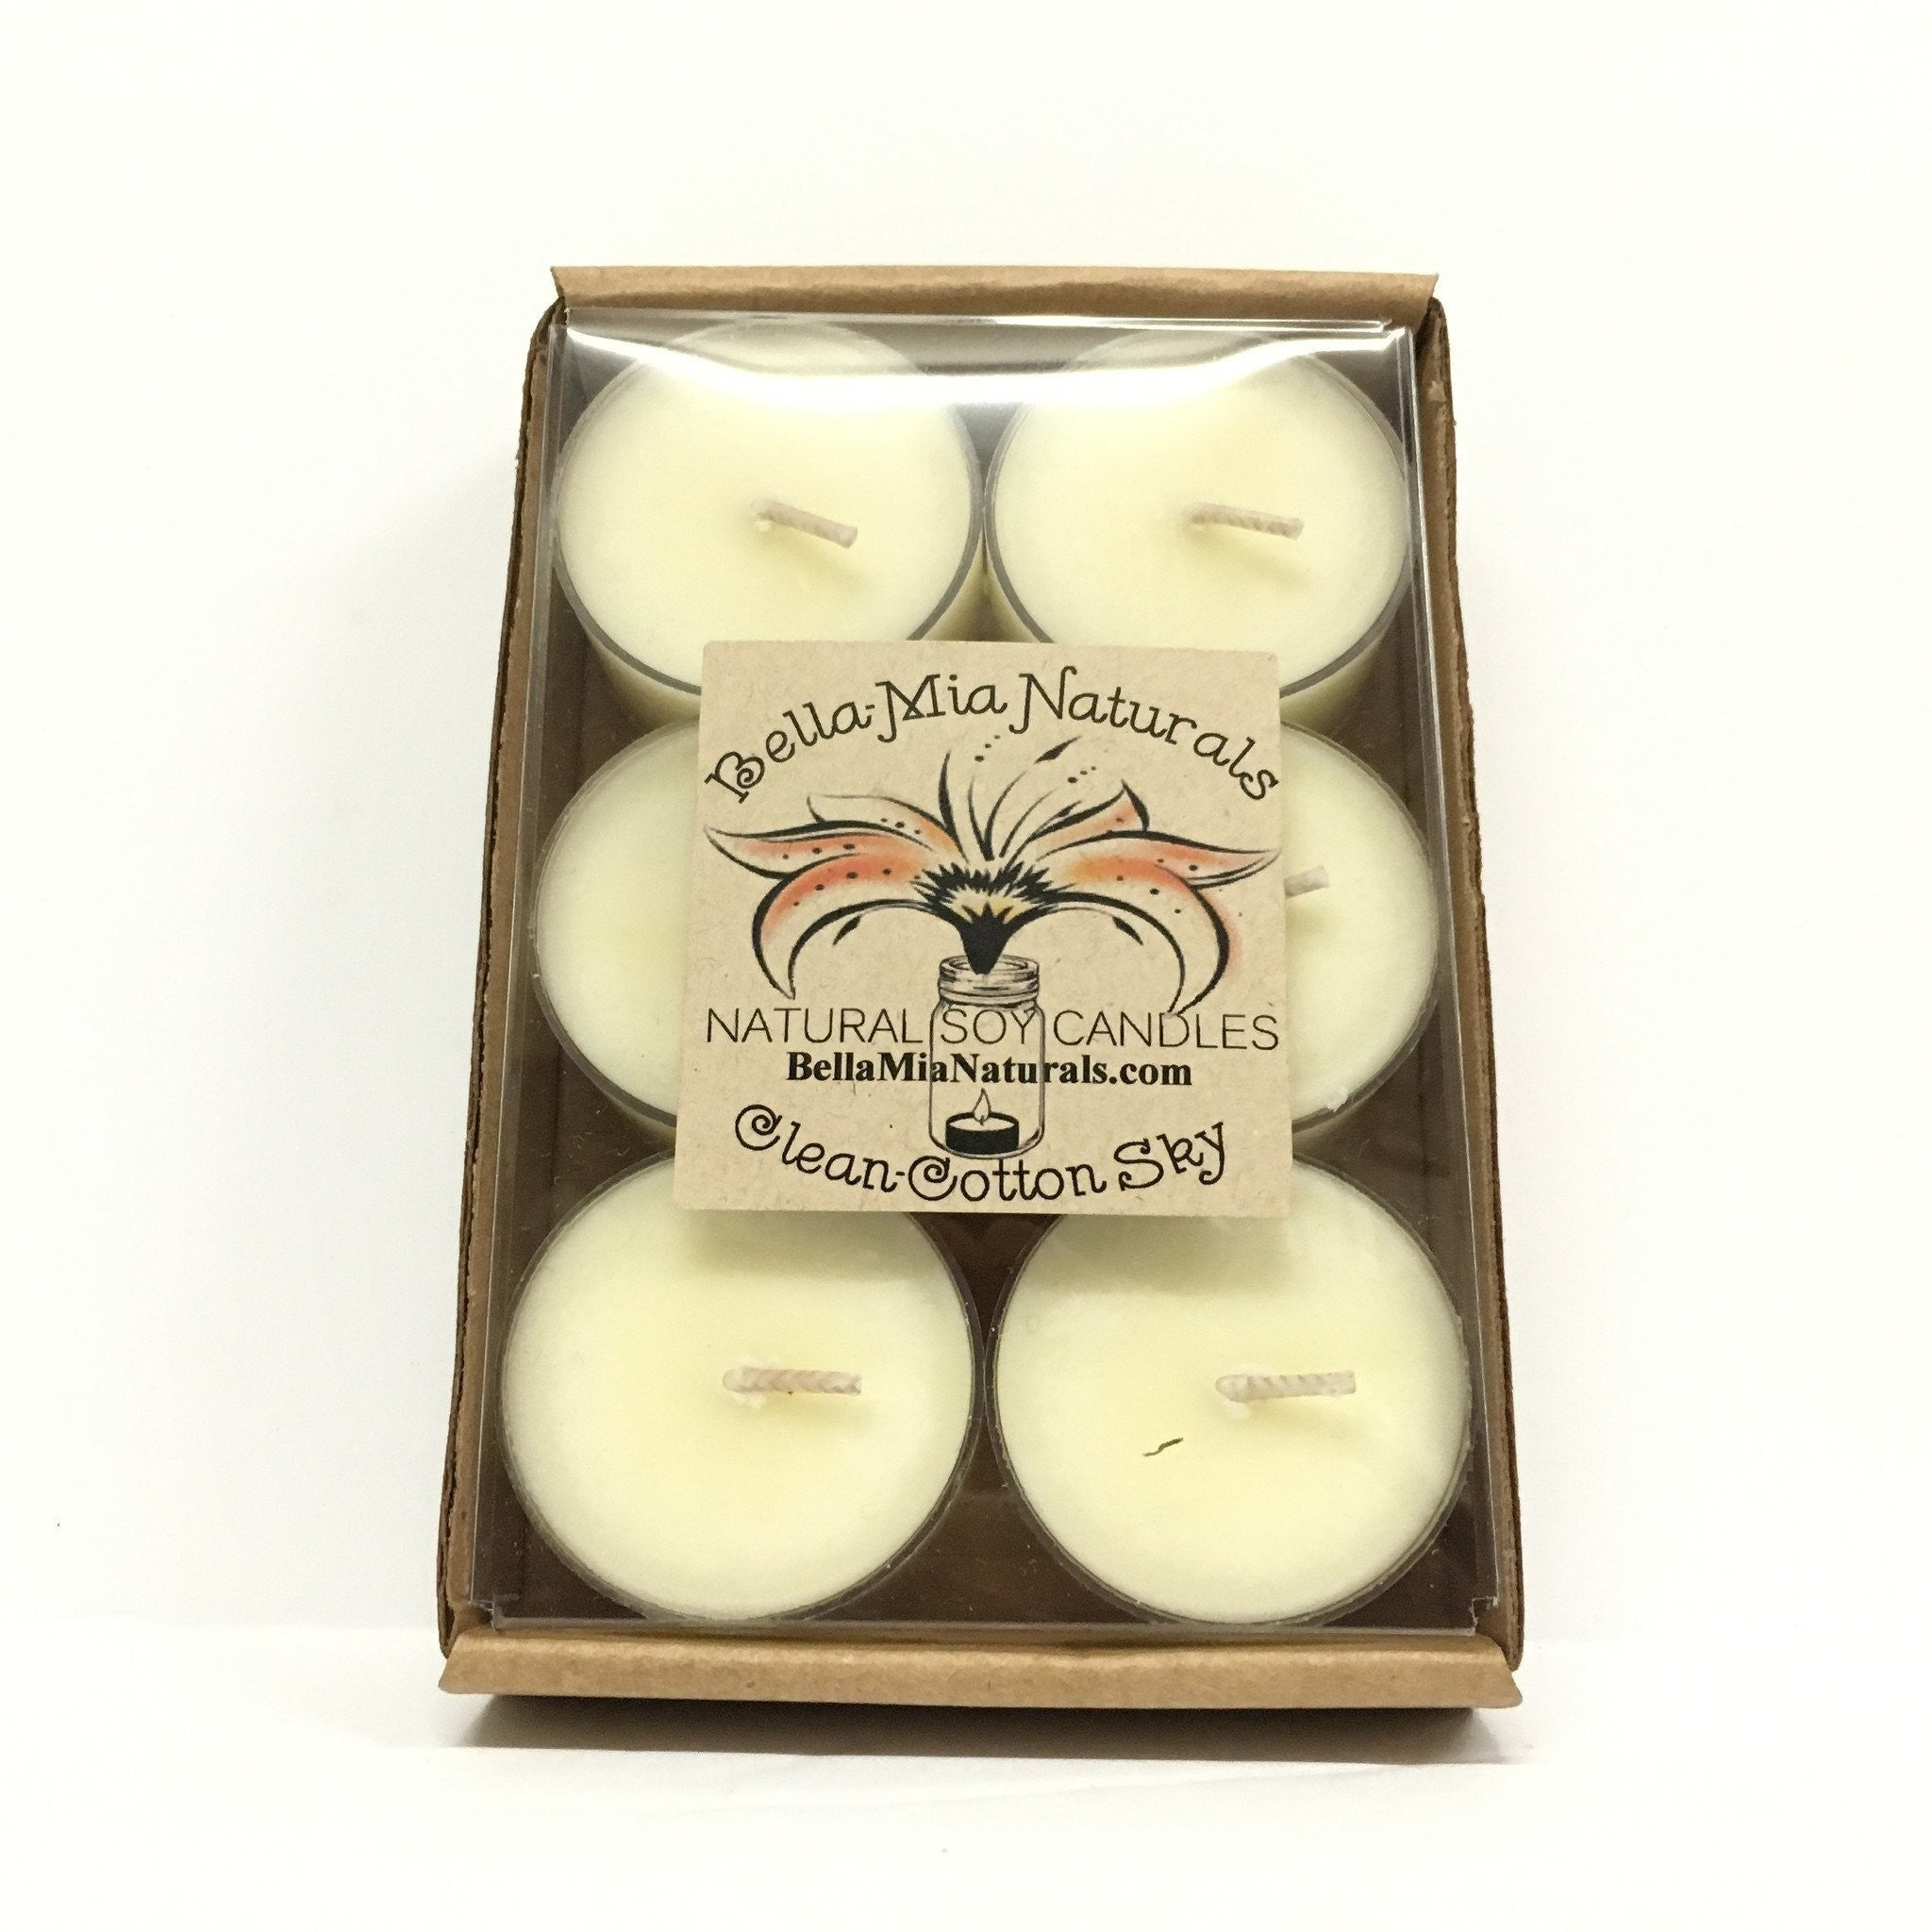 Clean Cotton-Sky Natural Hand Poured Soy Candles - Tealight-6 Pack - Bella-Mia Naturals All Natural Soy Candles & Lip Balms - 3